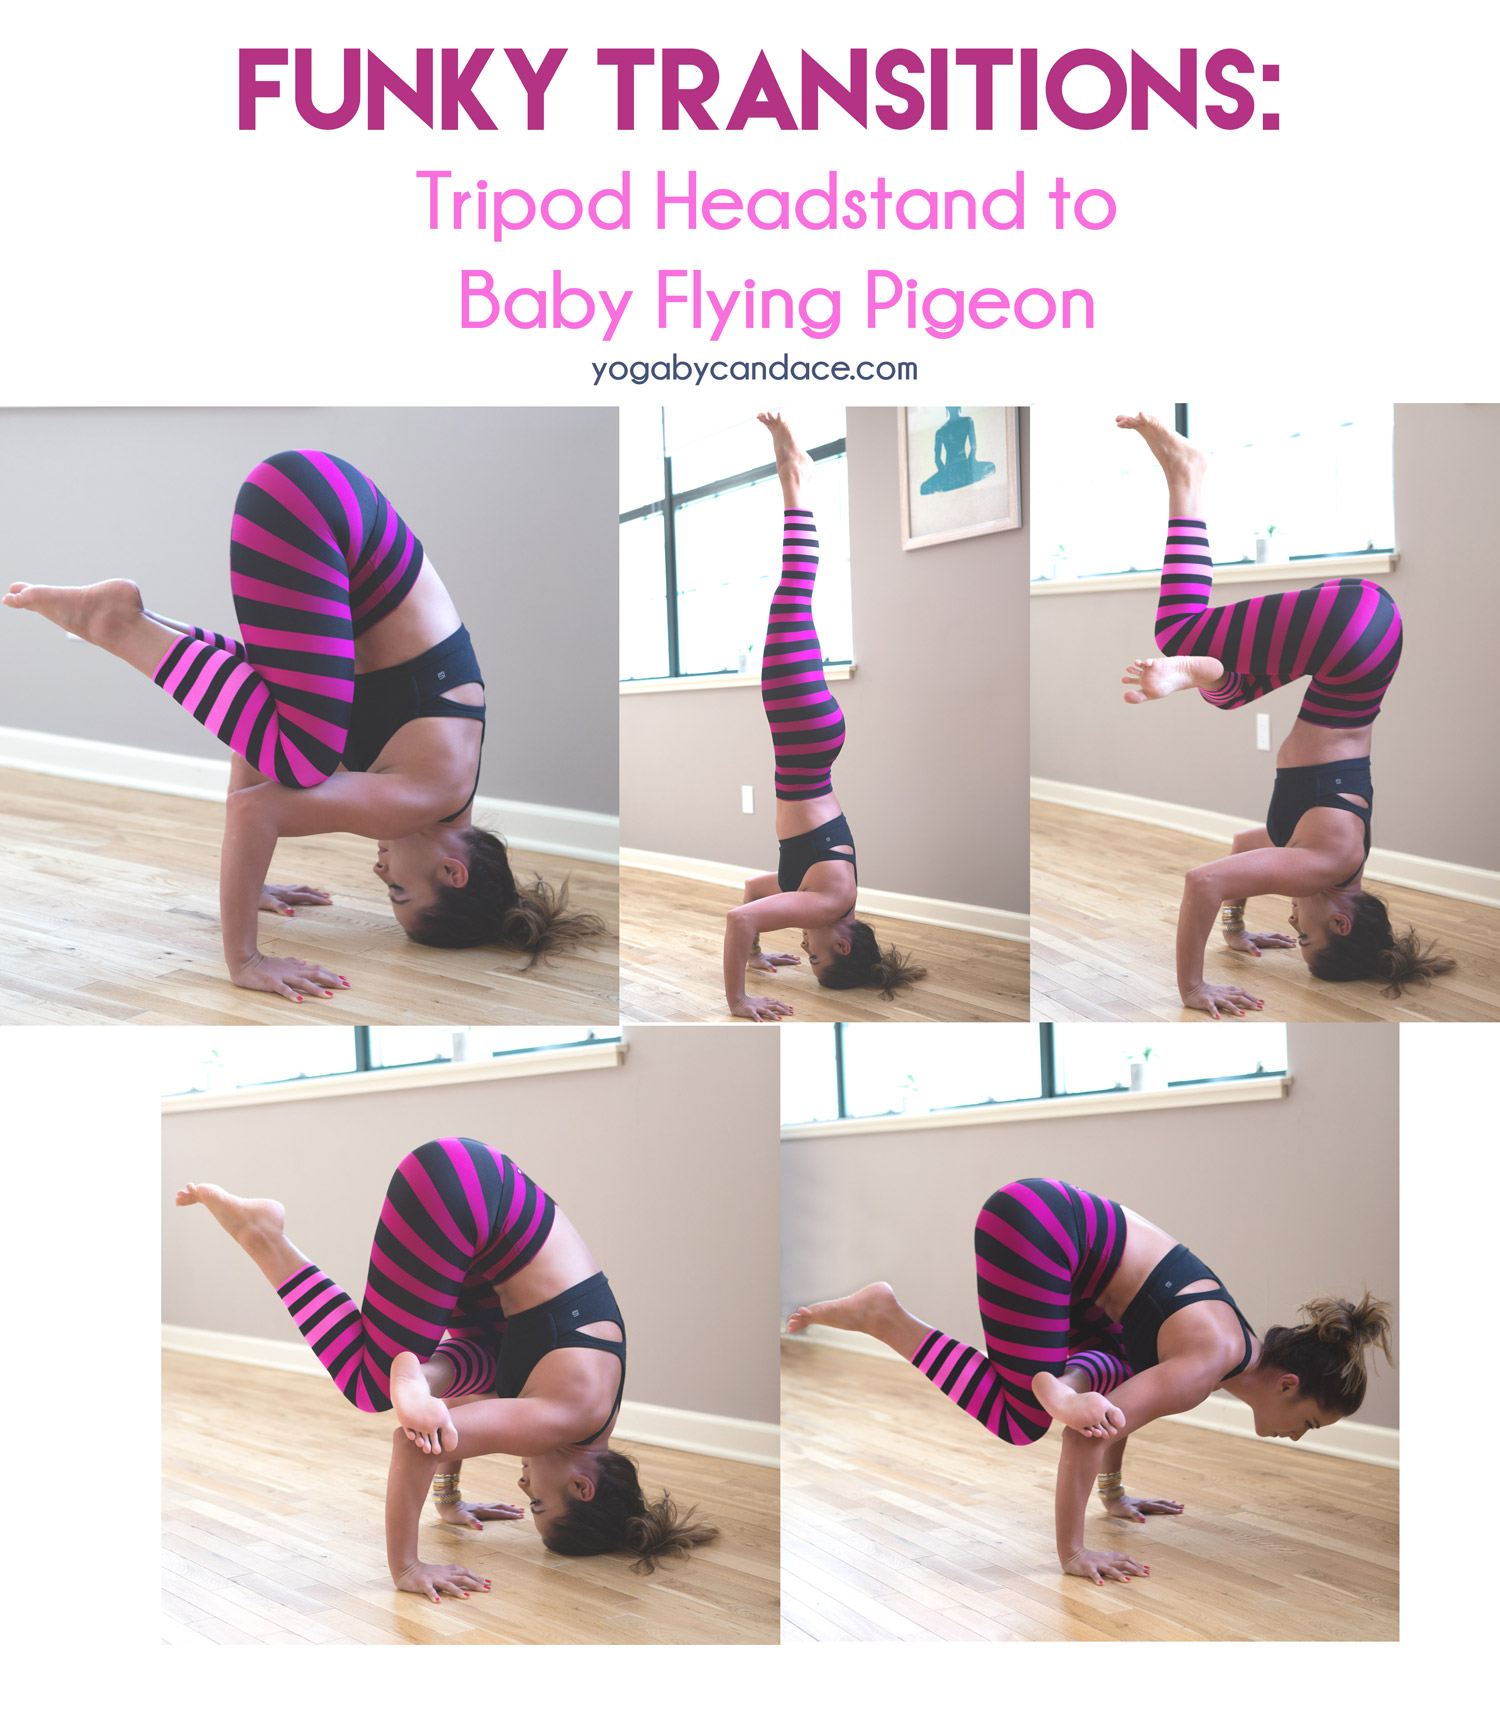 Pin now, practice later - funky transition: tripod headstand to baby flying pigeon